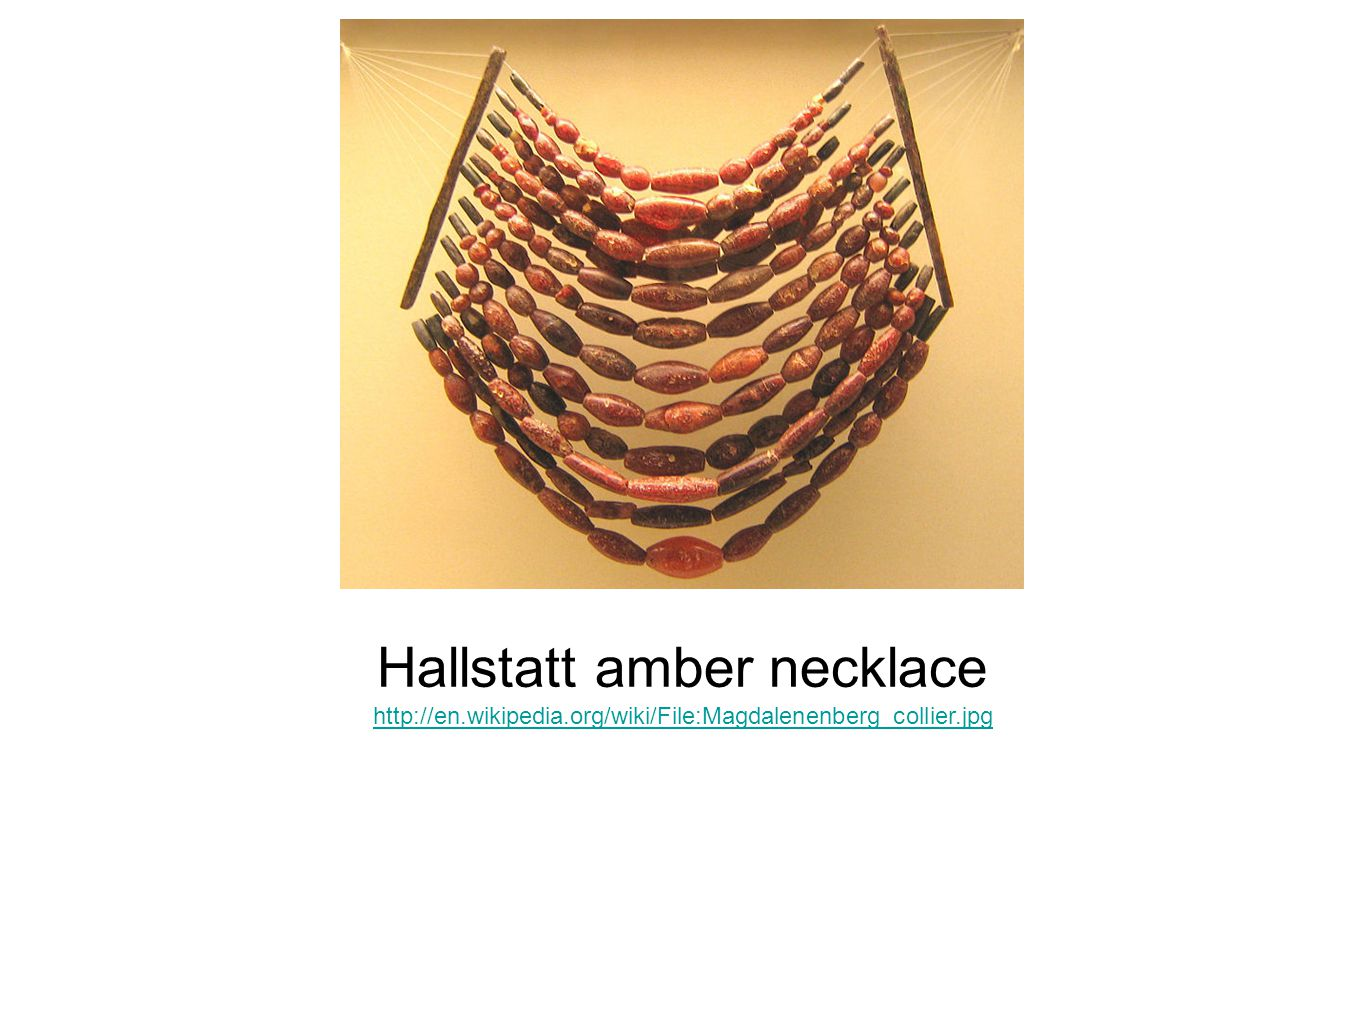 Hallstatt amber necklace